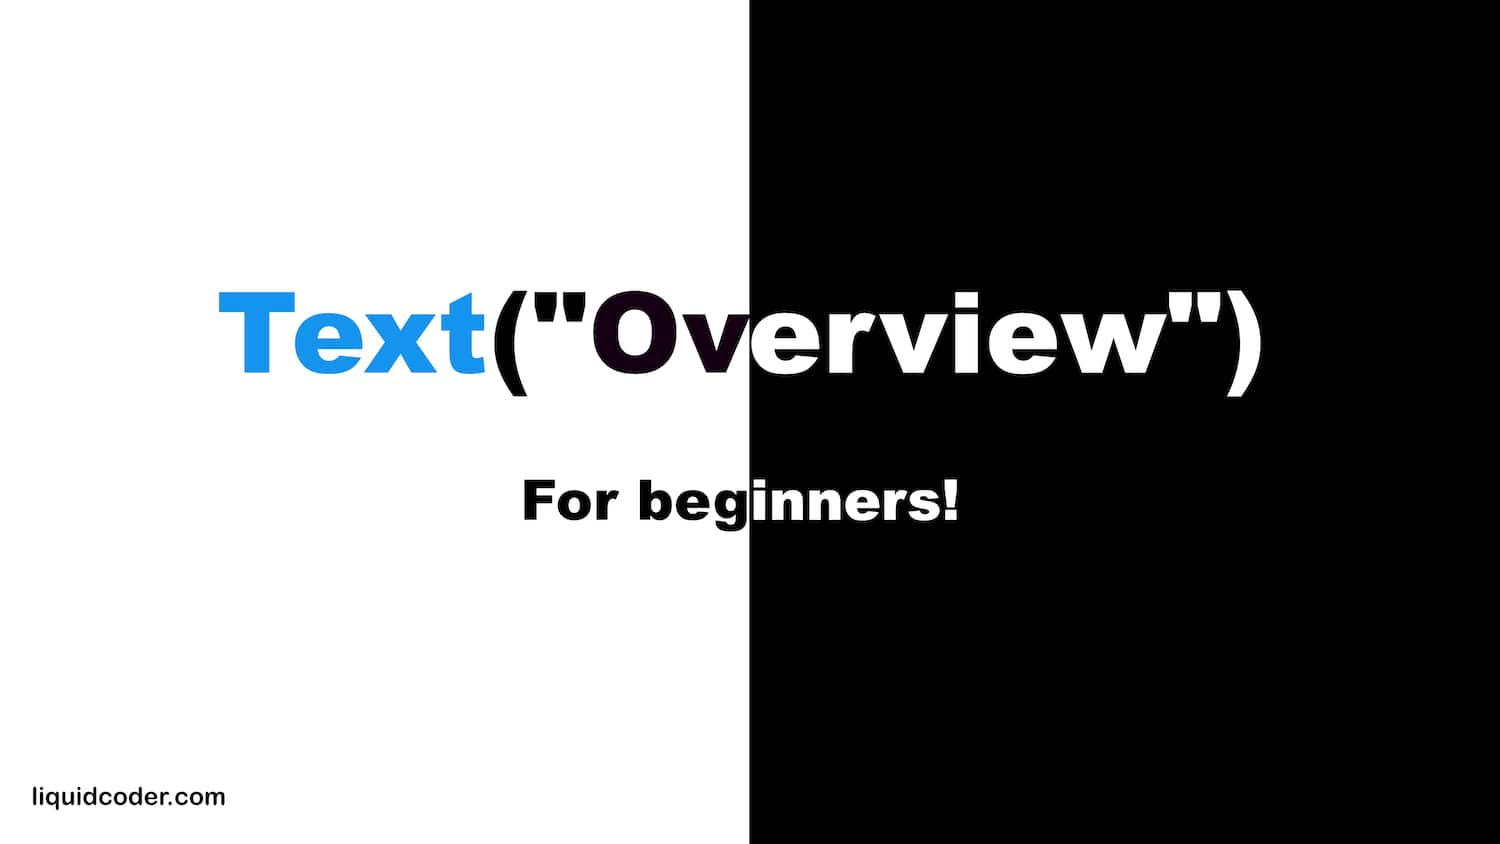 Text Overview for Beginners